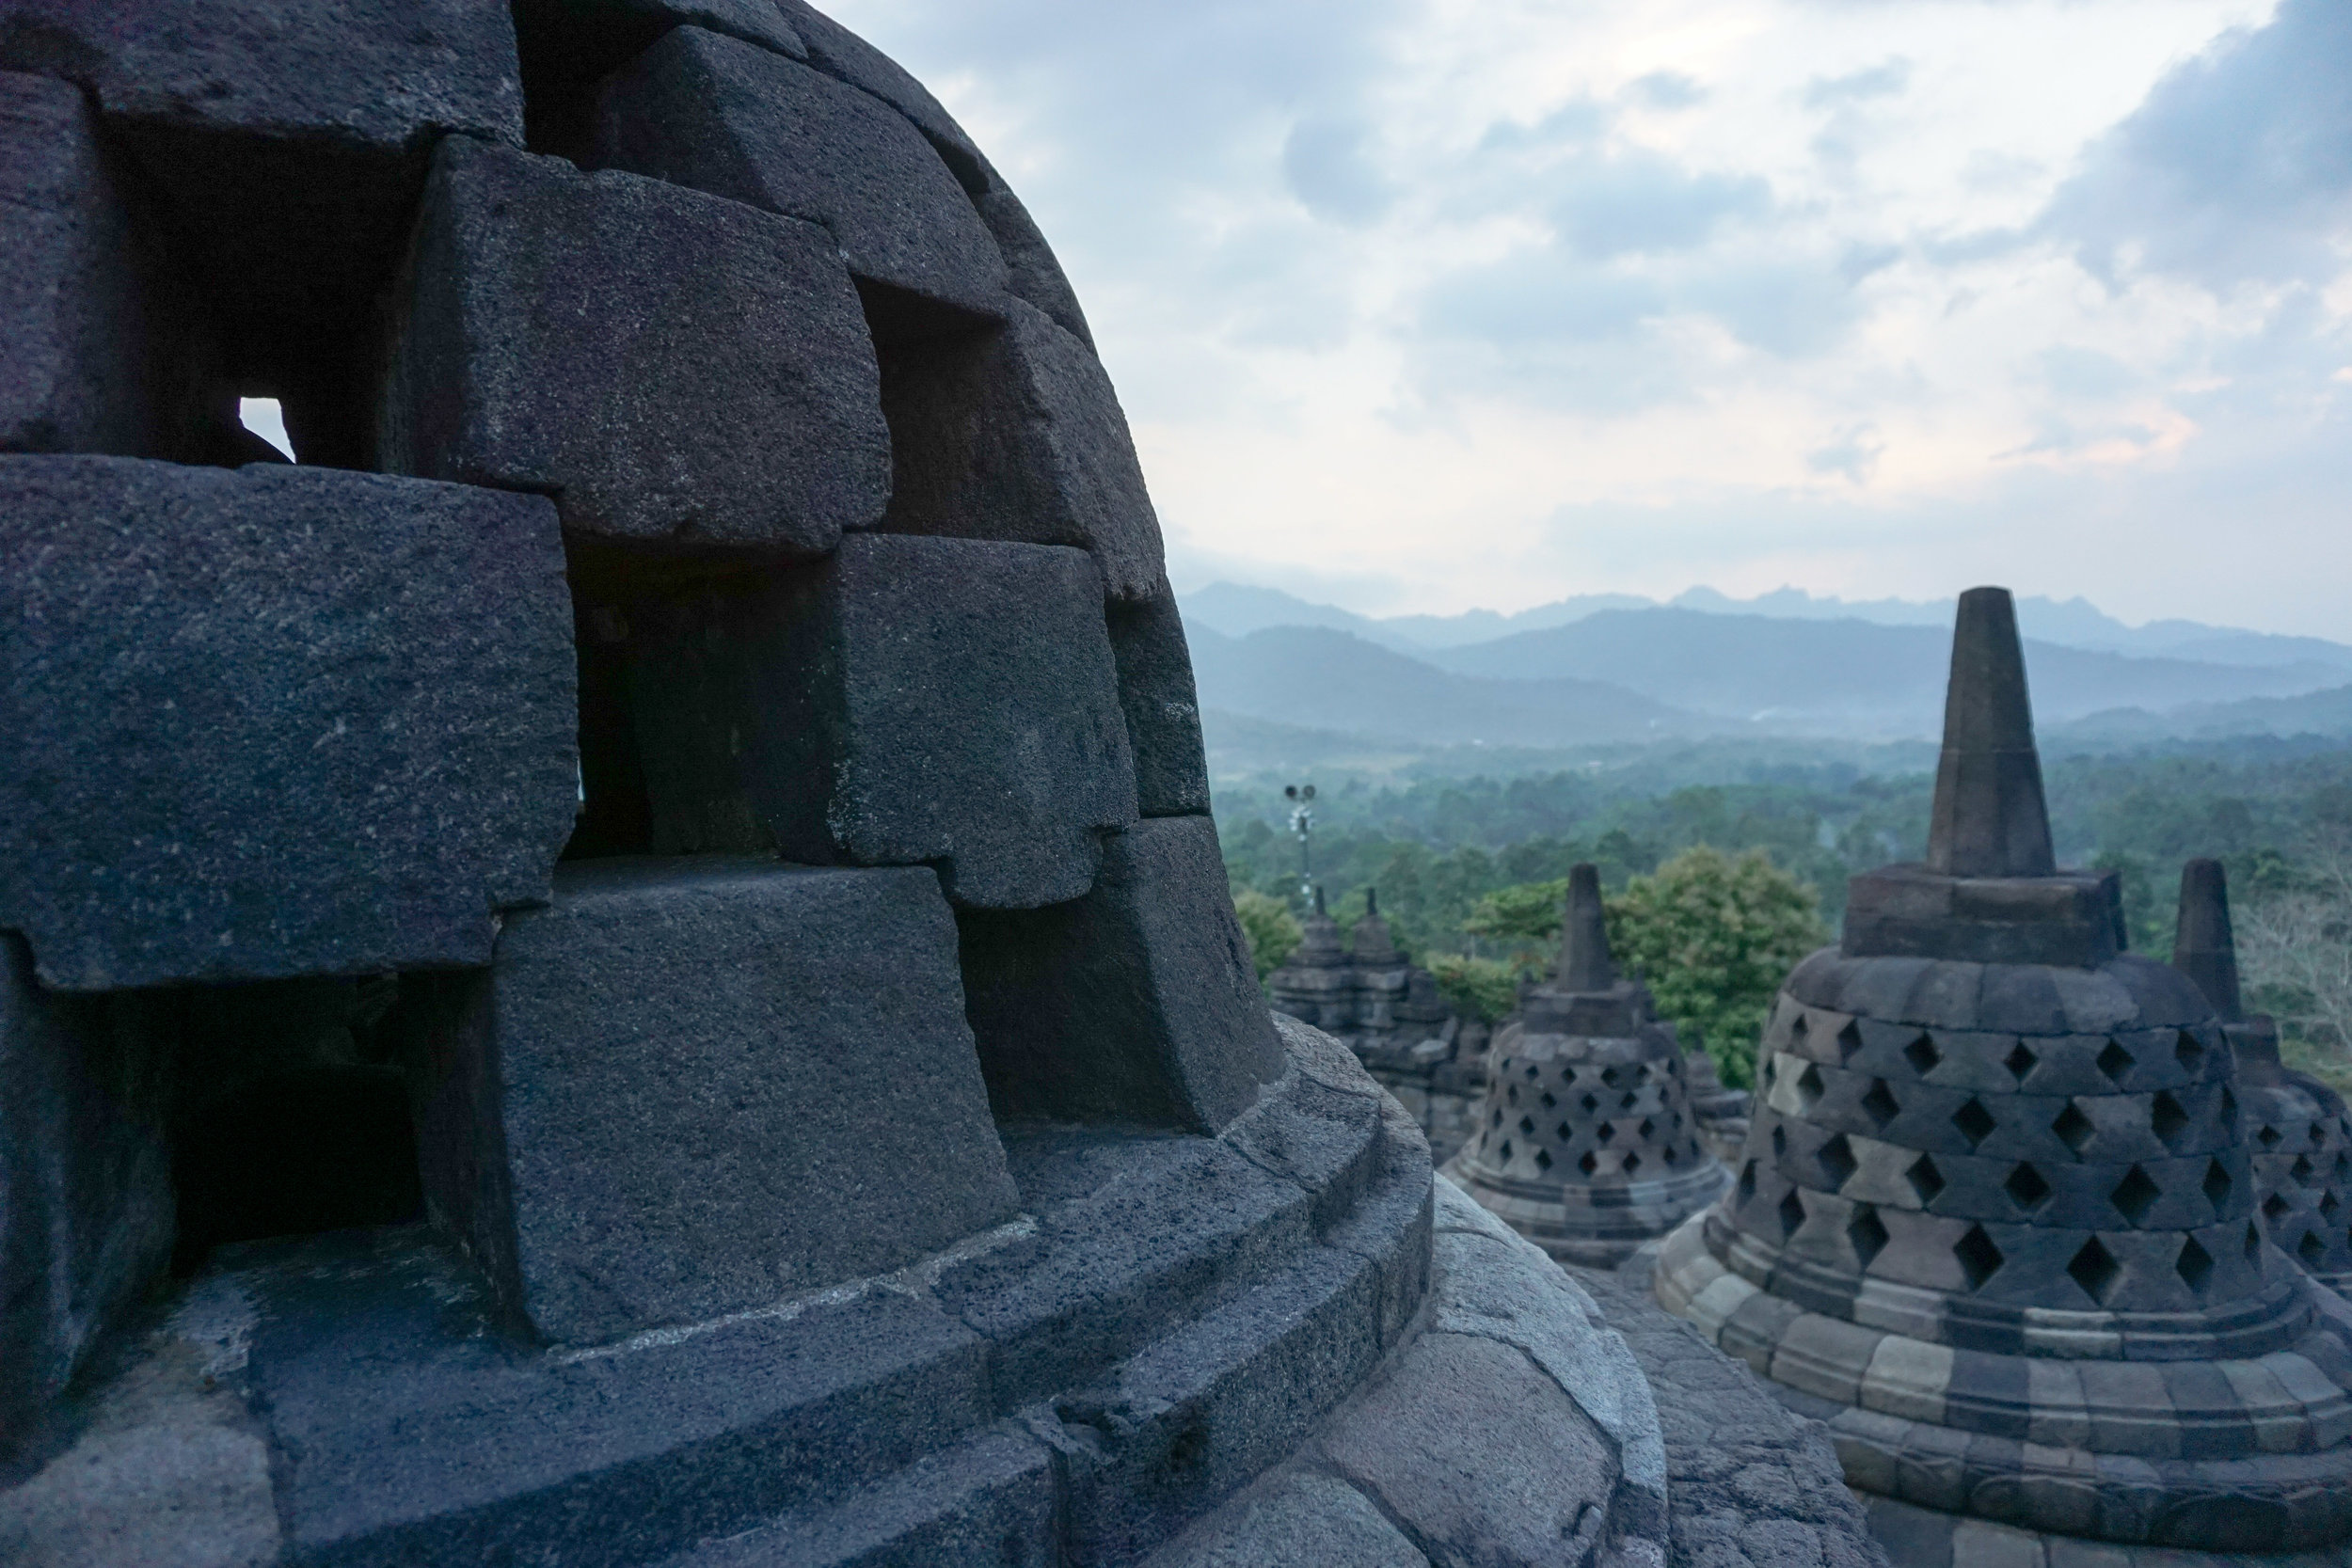 View from the top of Borobudur